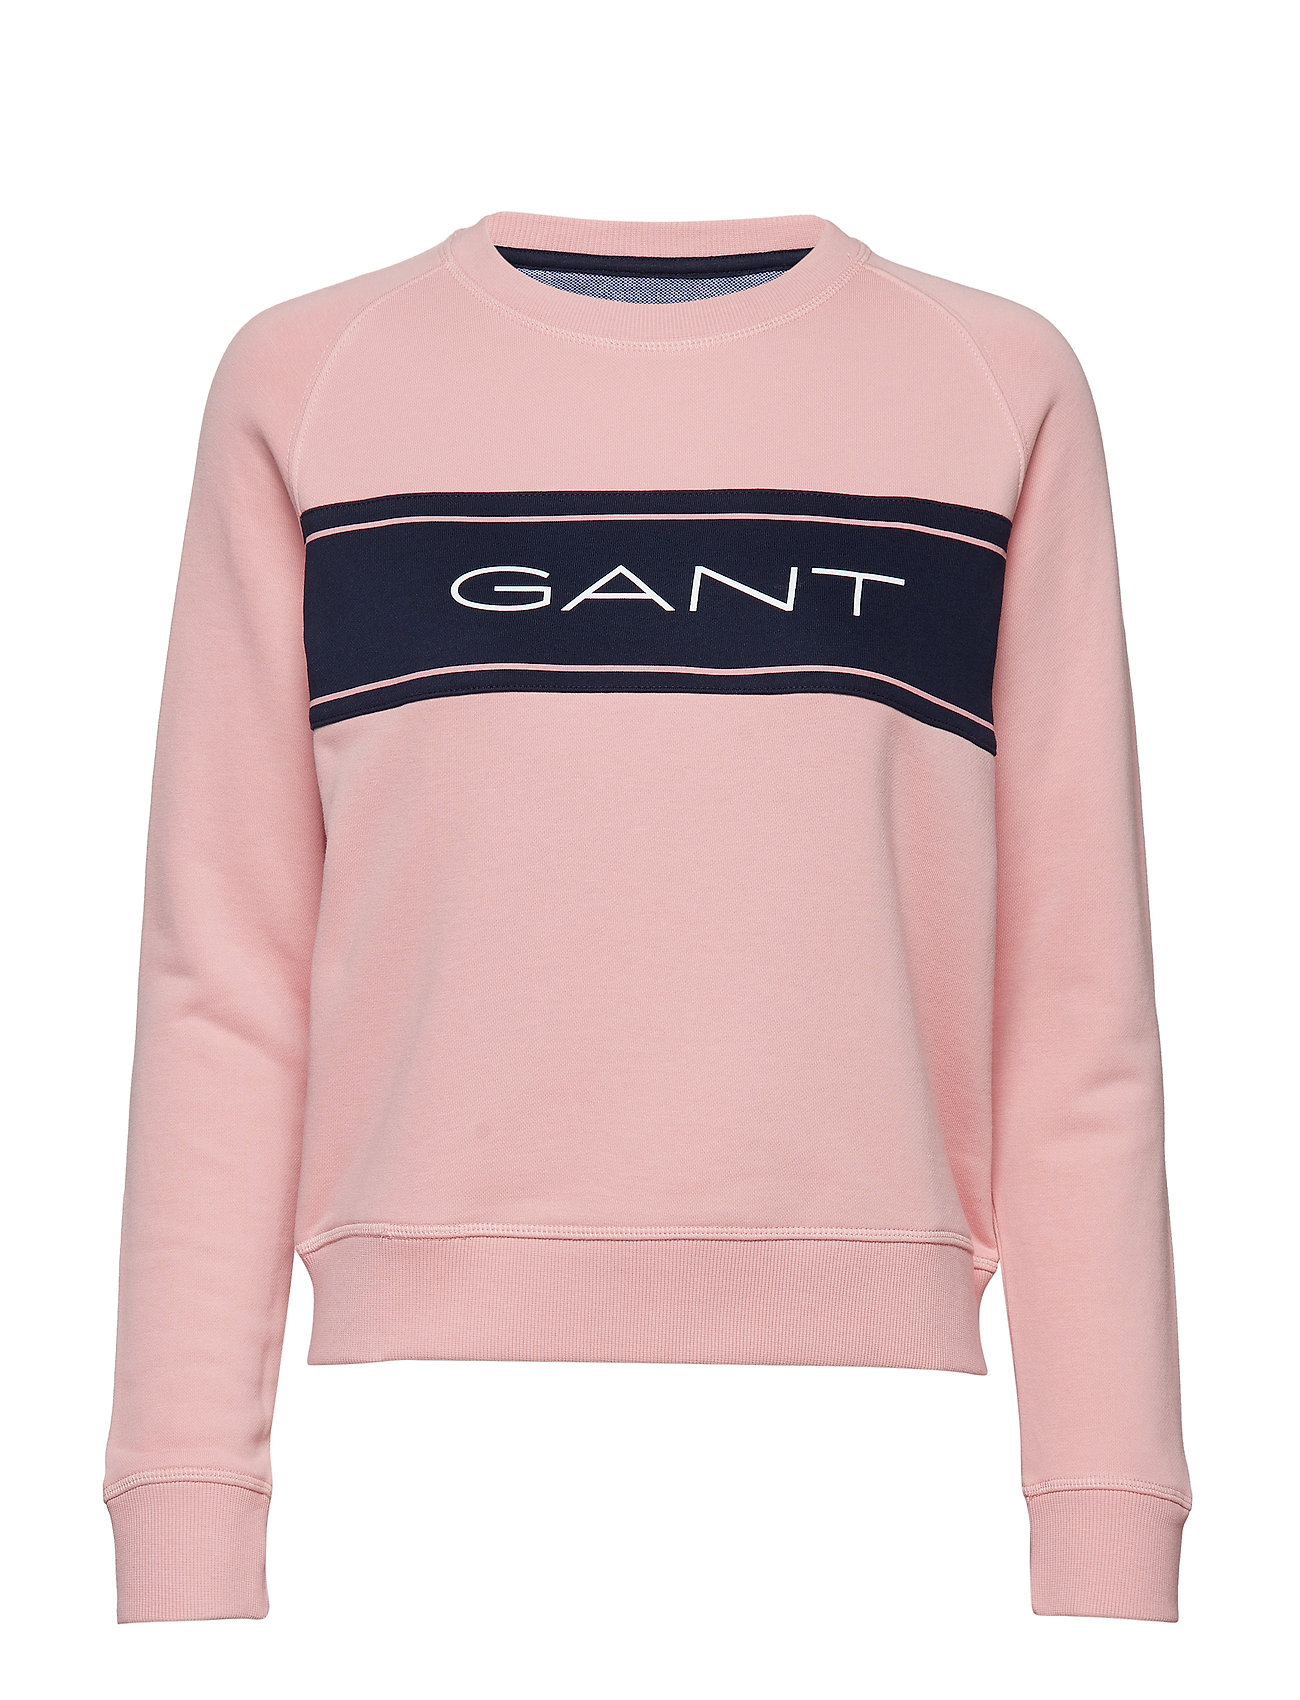 GANT D1. GANT ARCHIVE SWEAT C-NECK